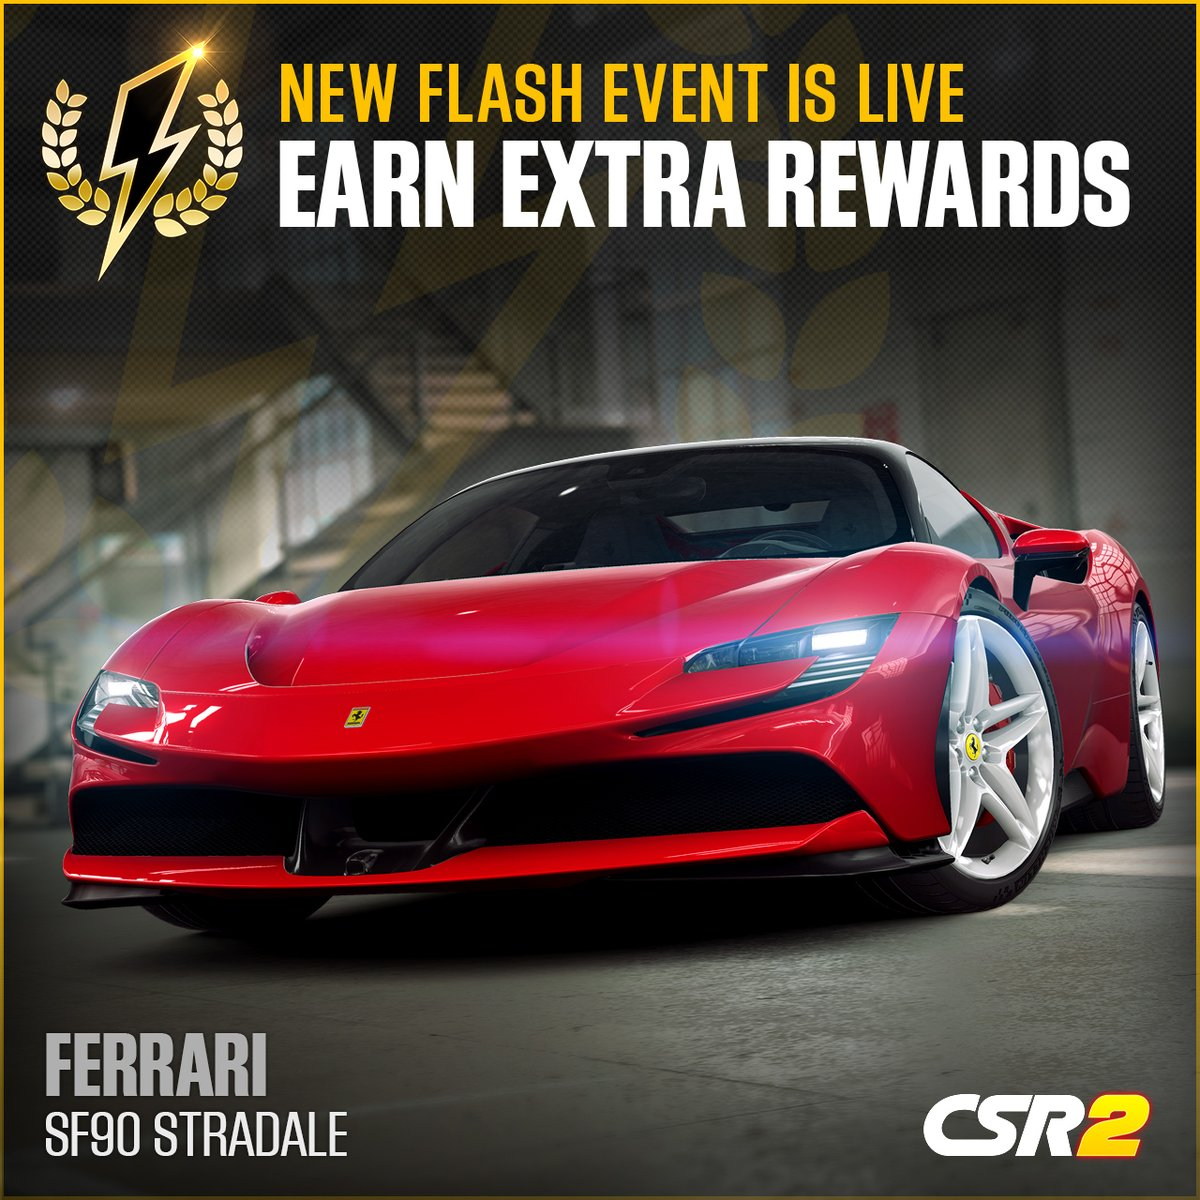 The new in-game Flash Event is live with the Ferrari SF90 Stradale! https://t.co/FLKXCNFN5c